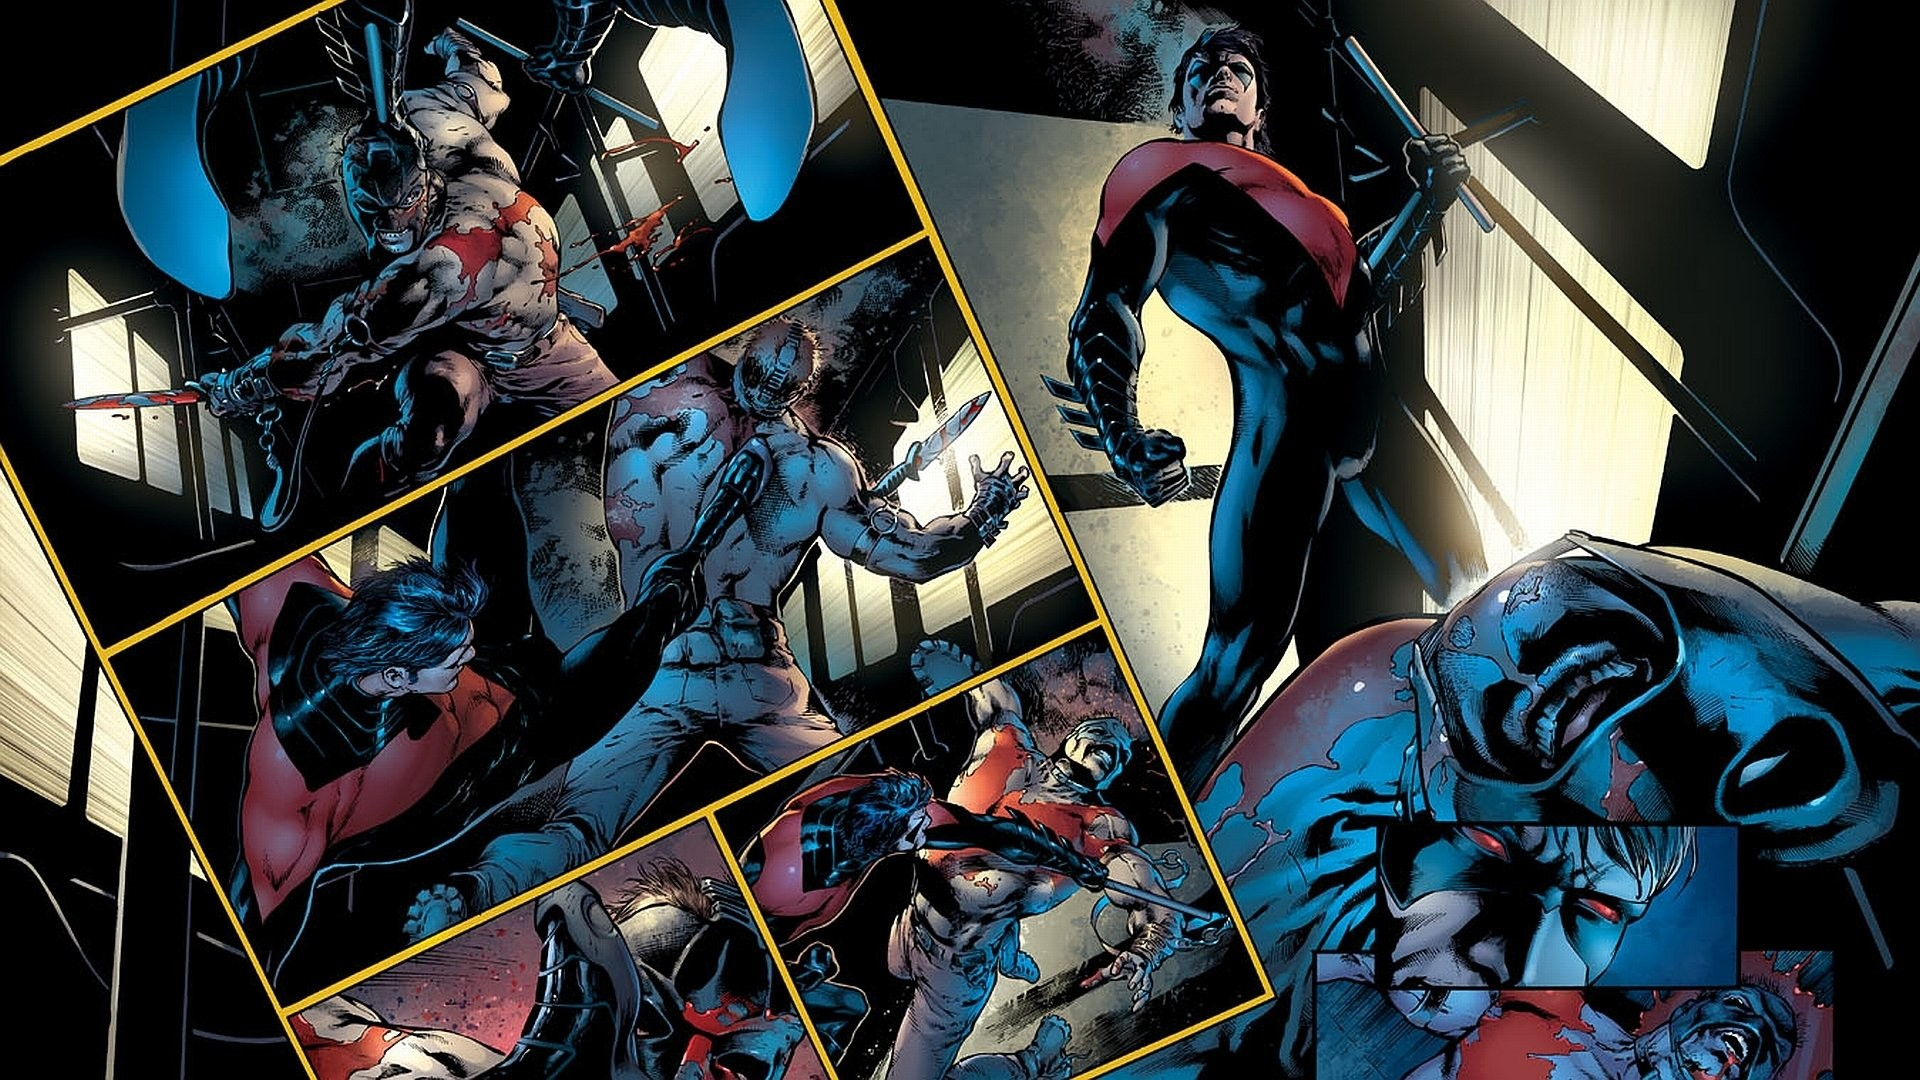 1920x1080 Comics - Nightwing Wallpaper